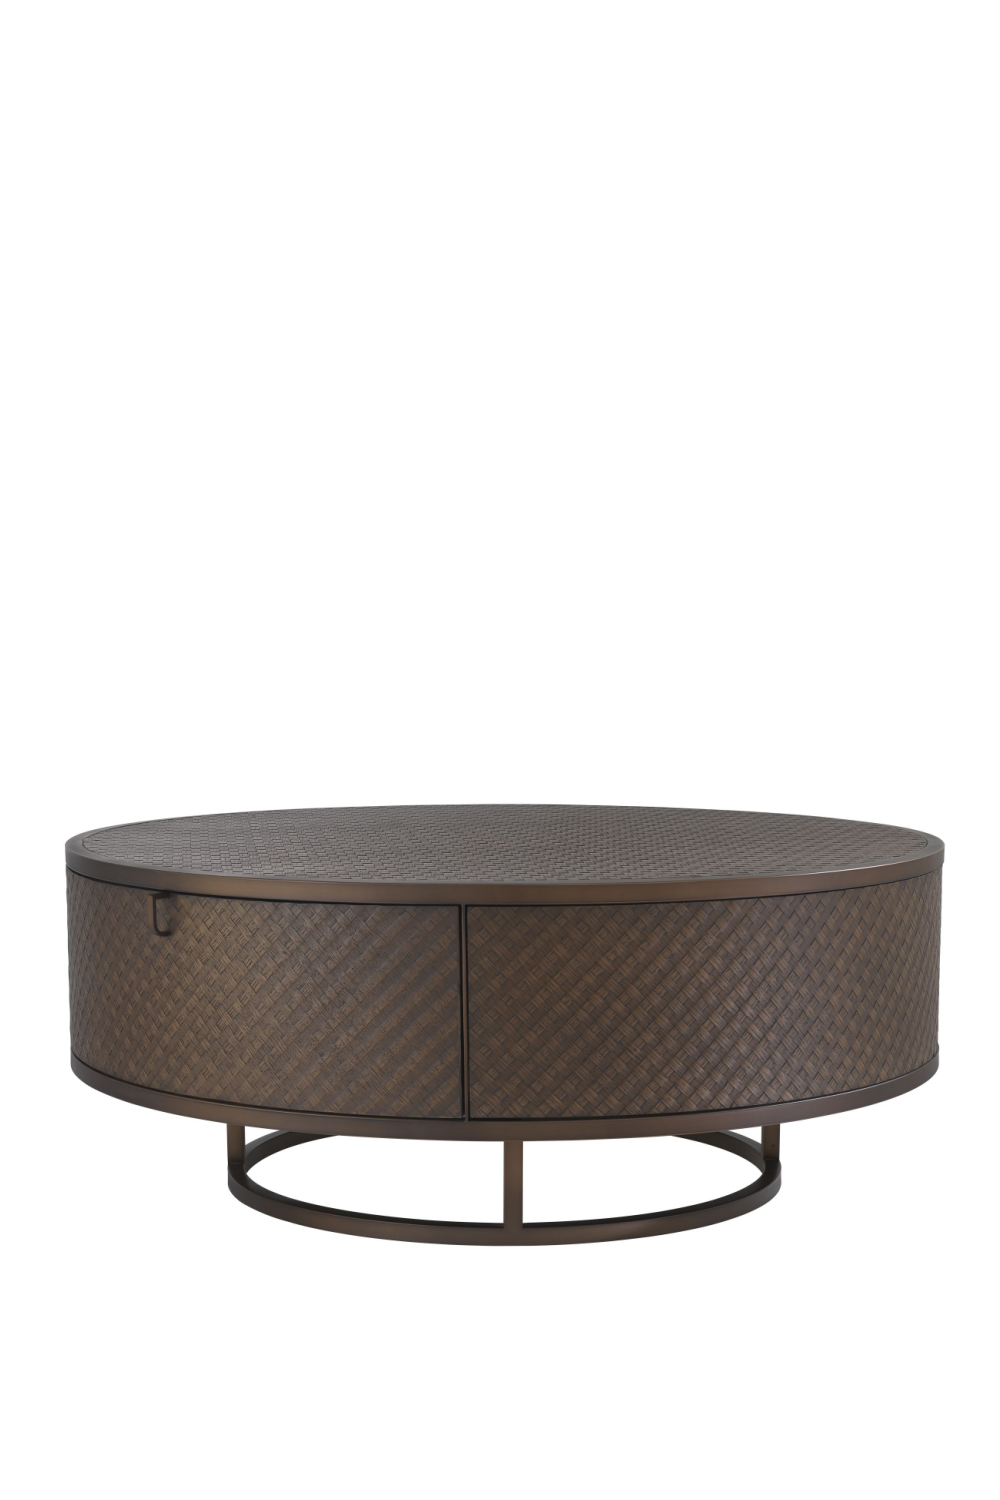 Woven Oak Coffee Table | Eichholtz Napa Valley